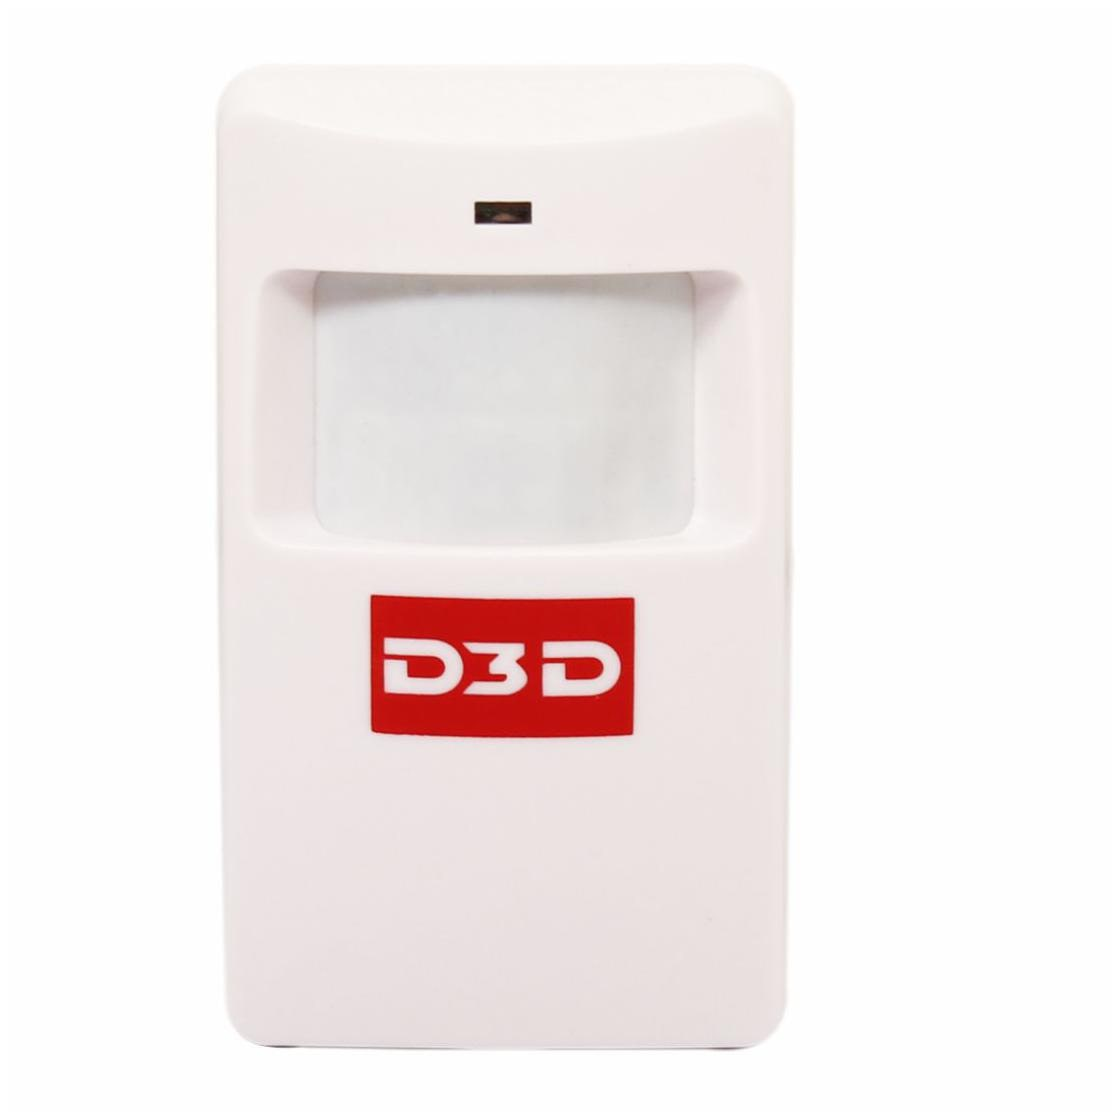 https://assetscdn1.paytm.com/images/catalog/product/H/HO/HOMD3D-MODEL-D1D3D-8859958AE060F/1603692574310_7.jpg